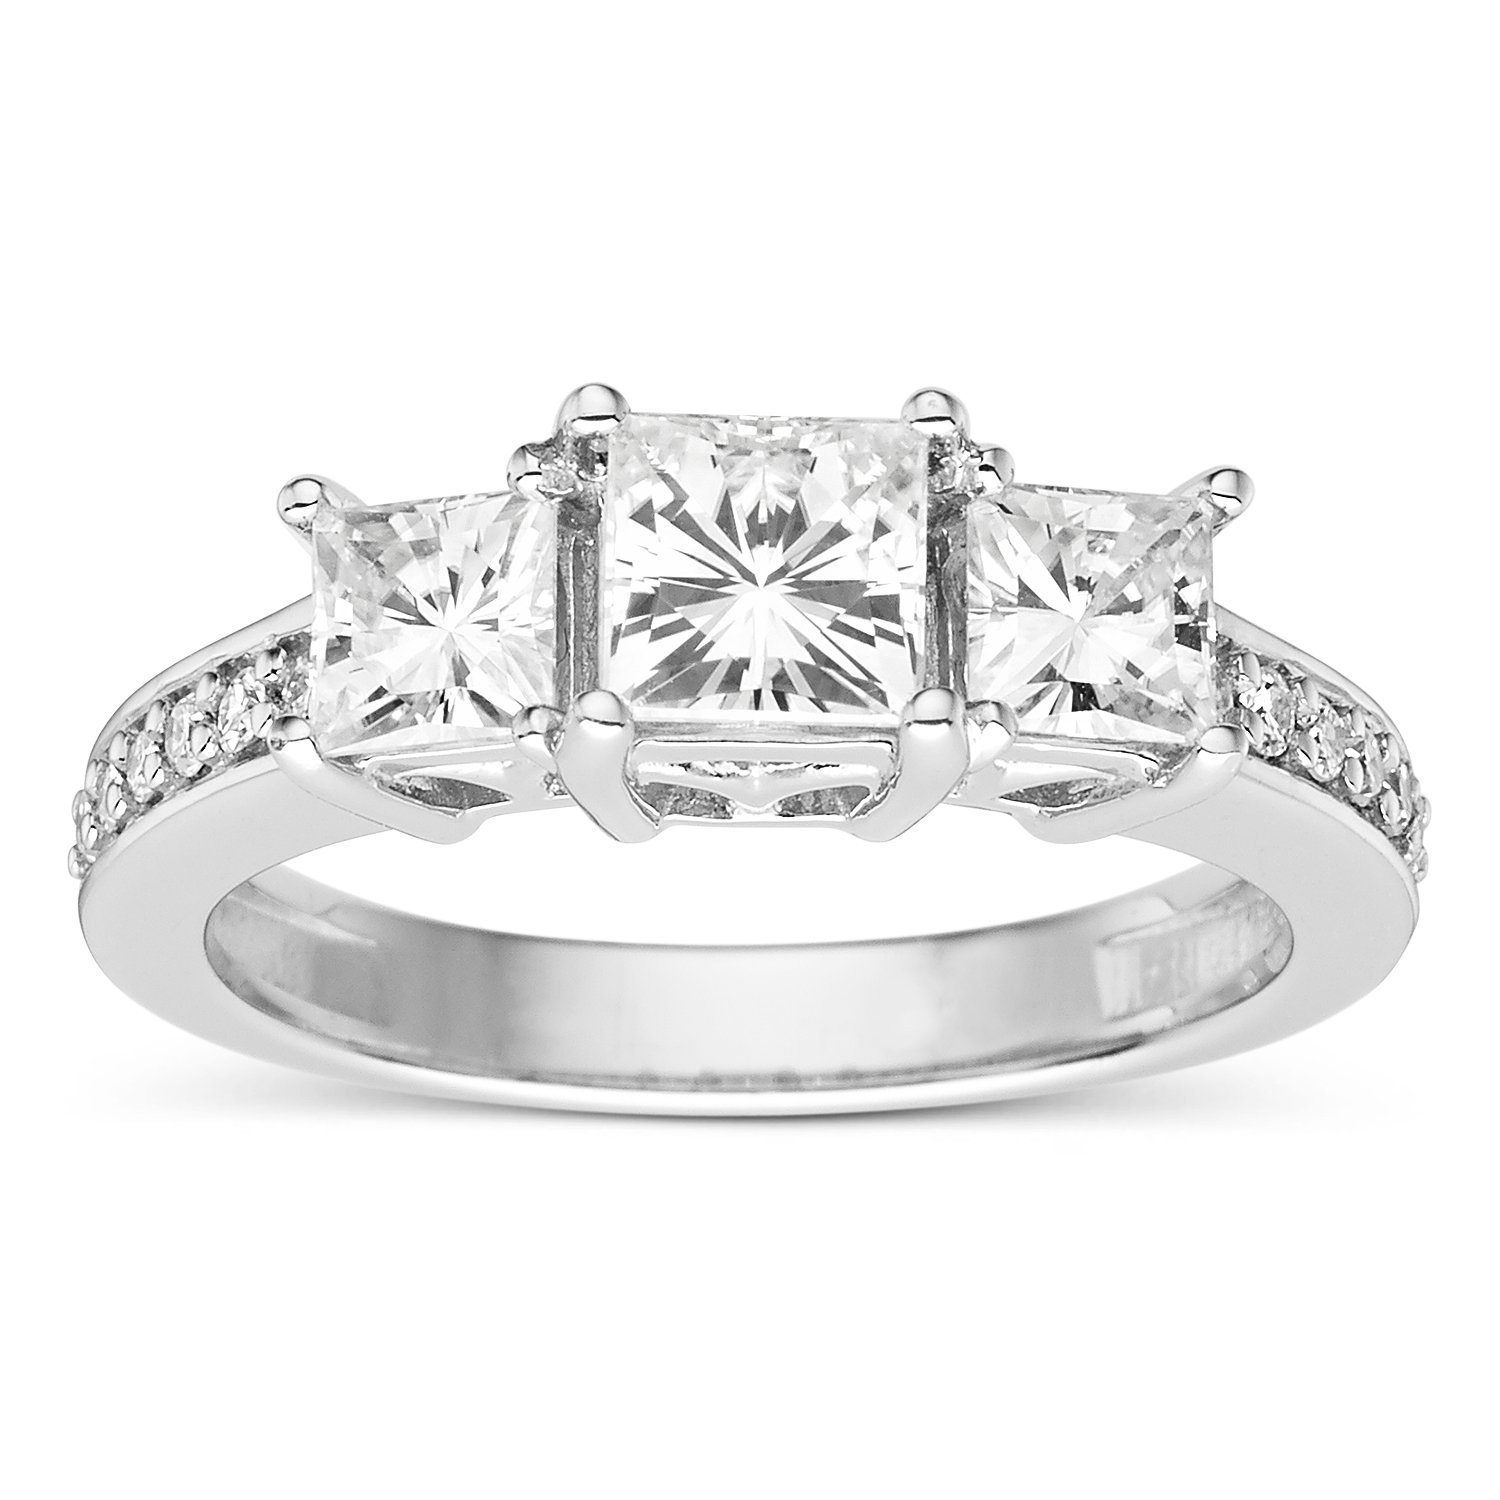 Forever Classic Square 5.0mm Moissanite Engagement Ring-size 5, 1.74cttw DEW By Charles & Colvard